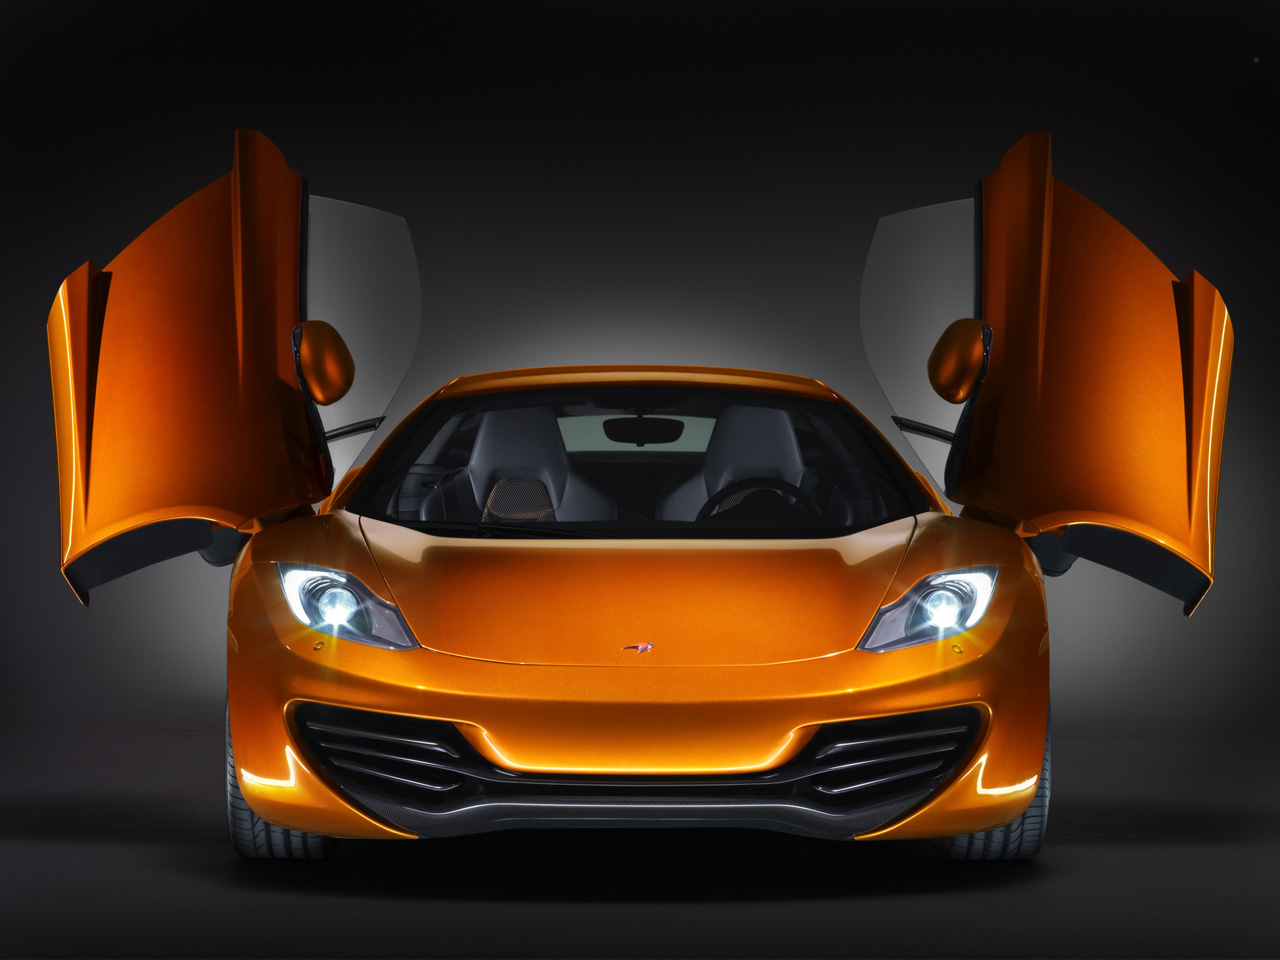 """MP4-12C"" is derived from, well, see below."